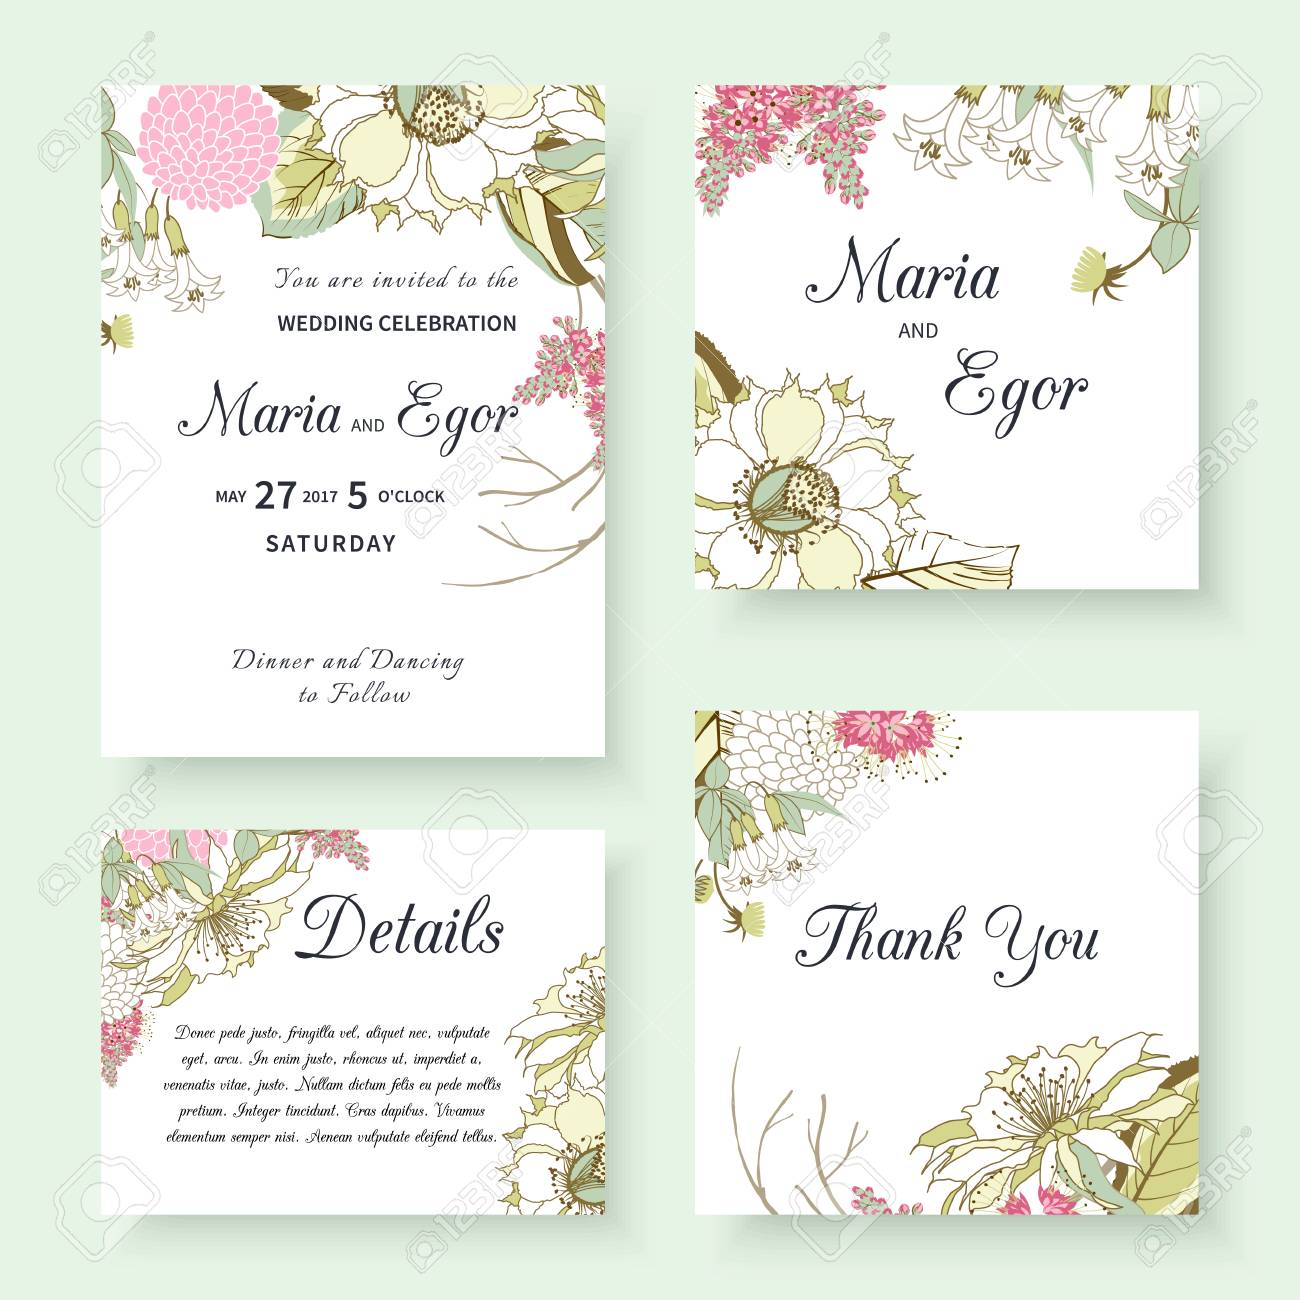 Wedding Invitation Templates With Spring Flower Designs Royalty